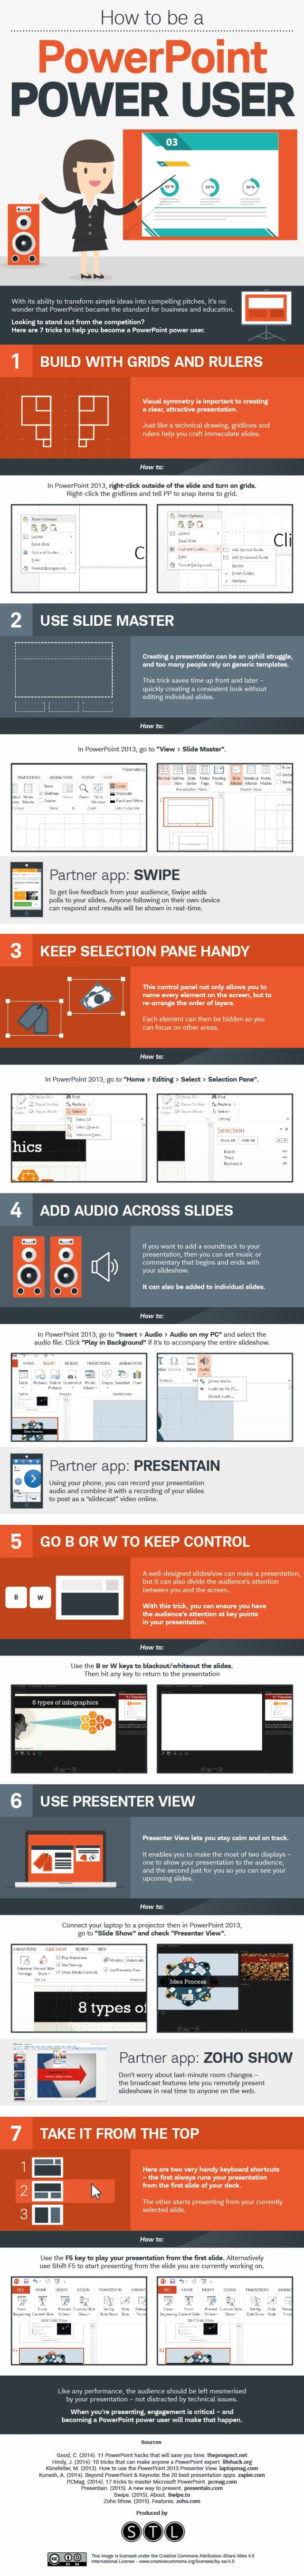 The 25 best microsoft powerpoint ideas on pinterest microsoft 7 microsoft powerpoint tricks every business owner needs to know infographic alramifo Choice Image